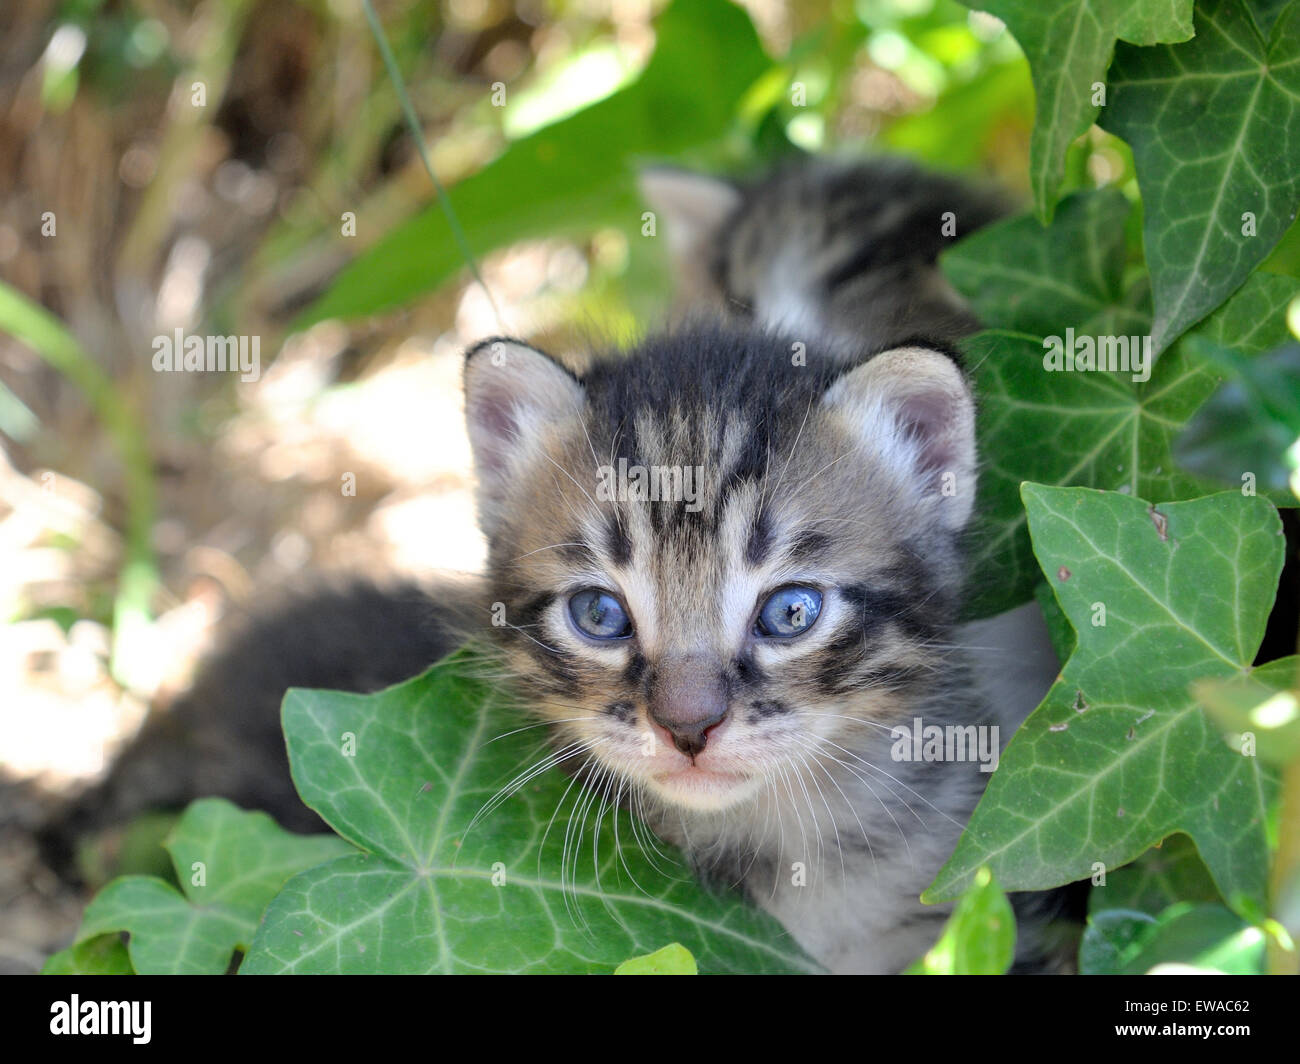 Kittens newborn photographed among the grass in daylight - Stock Image